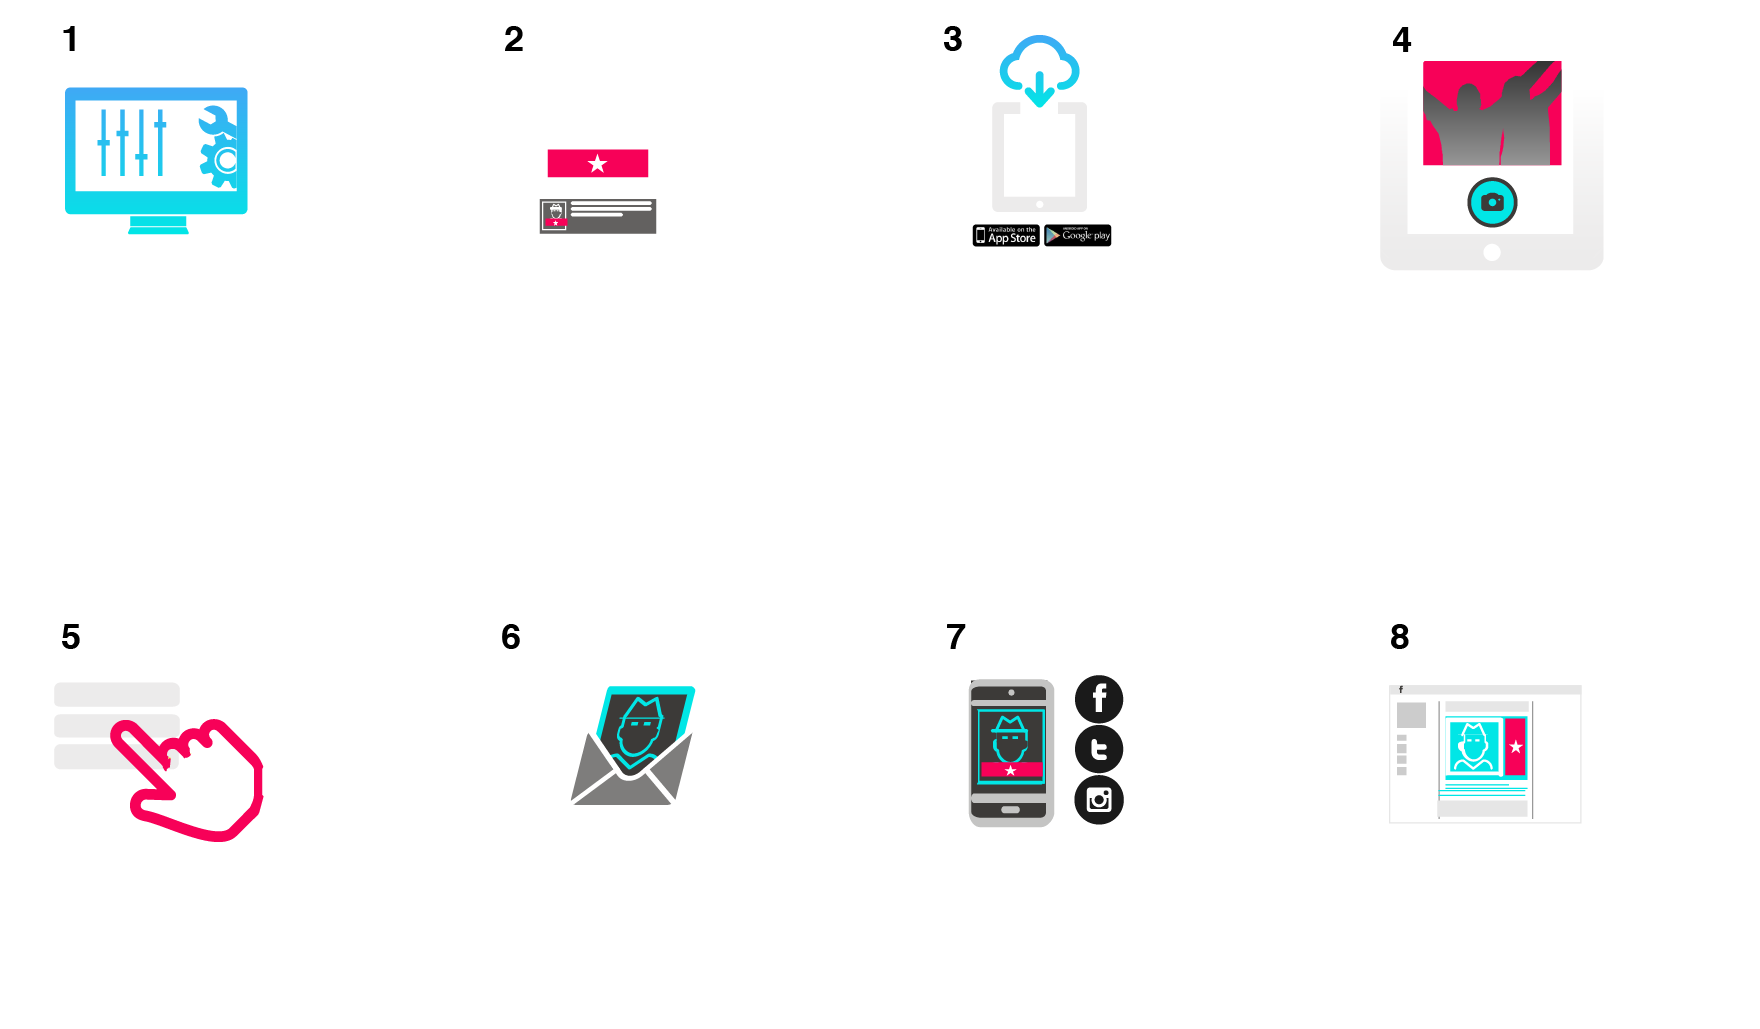 Snappie Activation Process